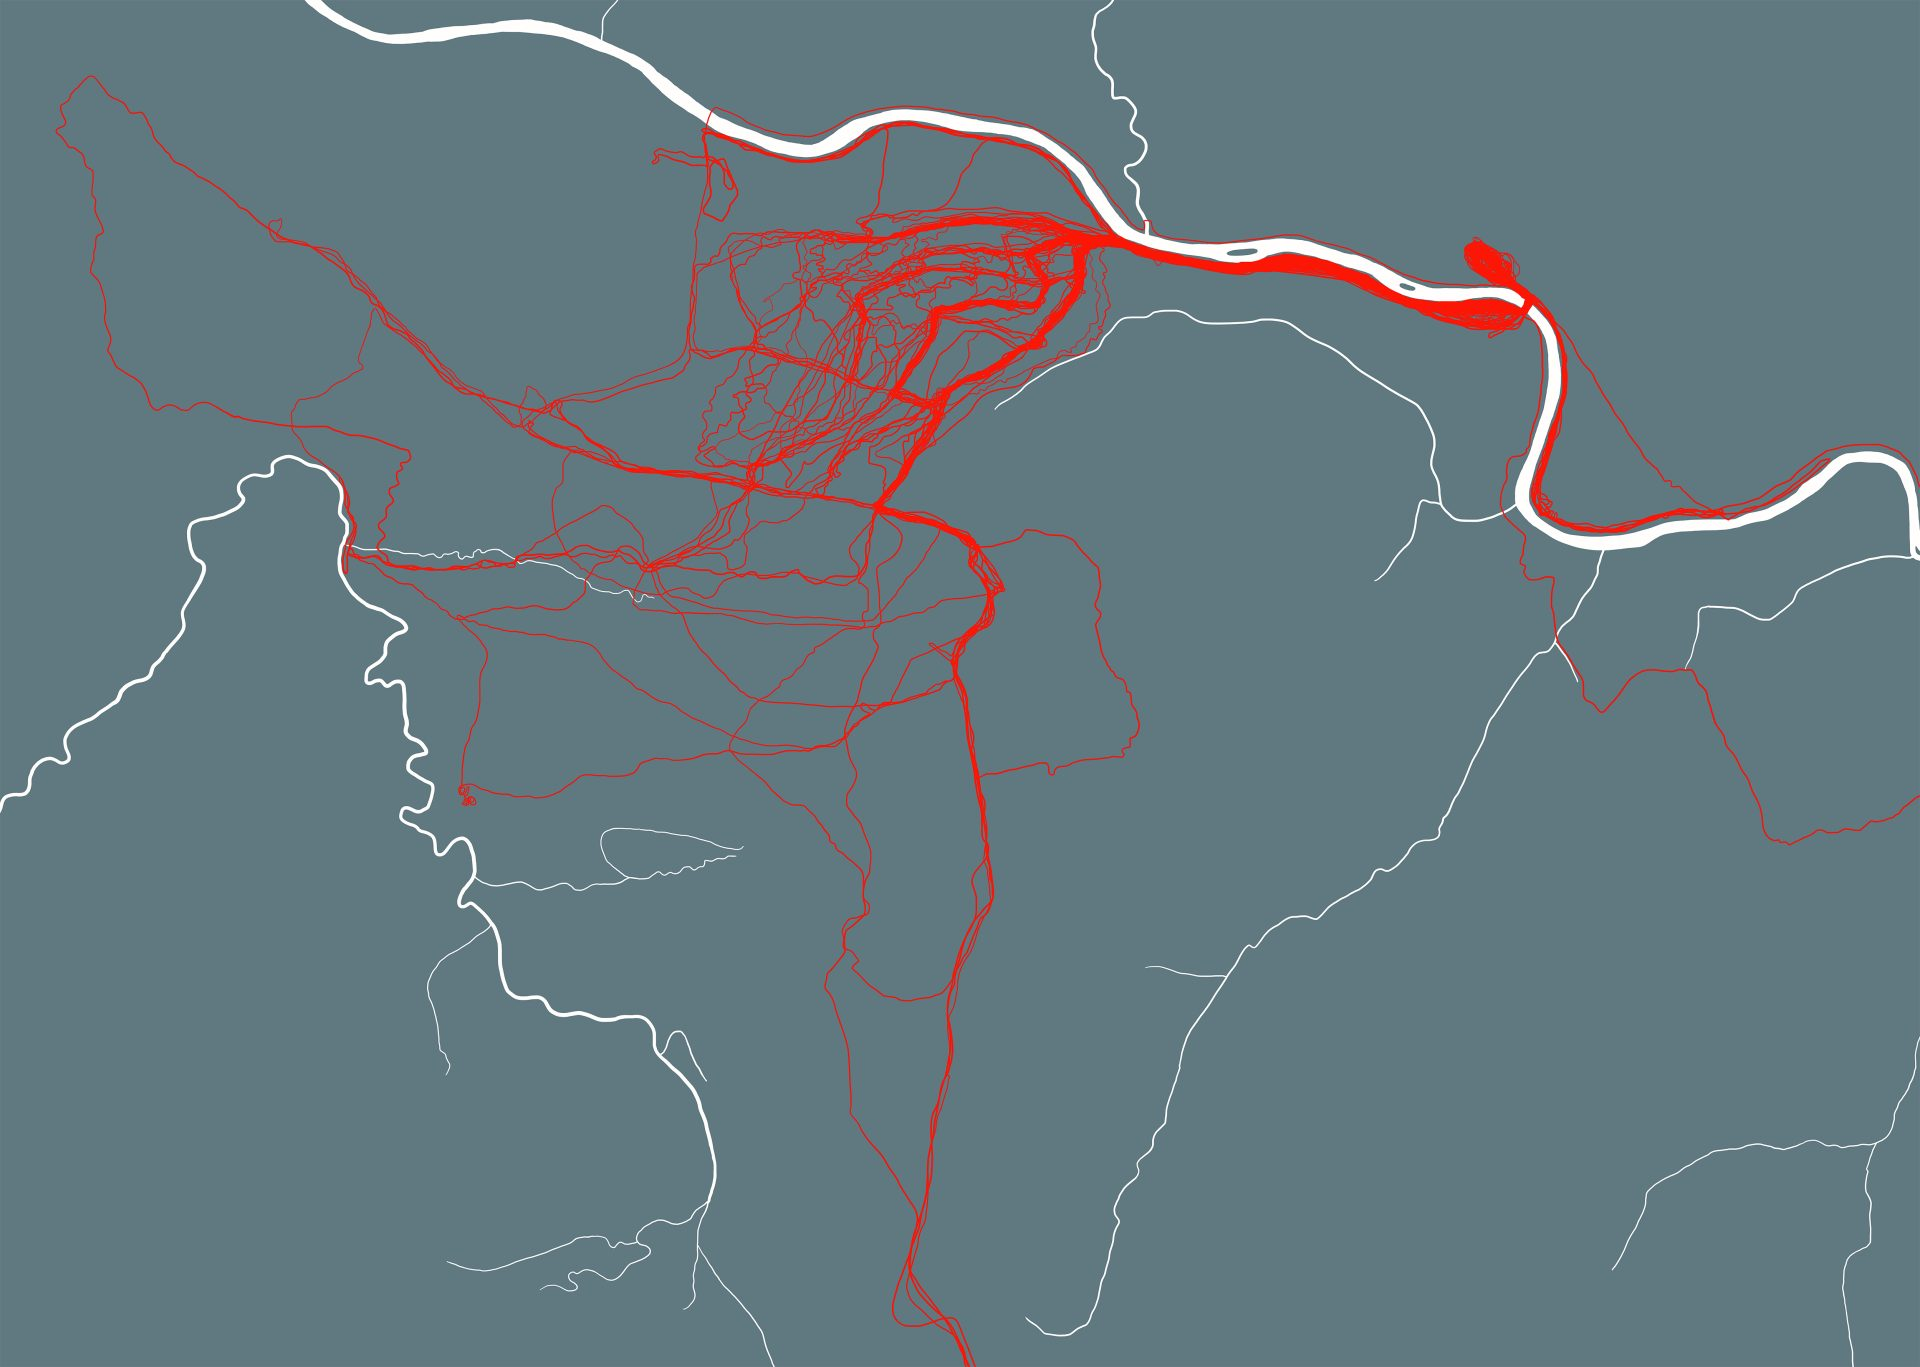 The image shows an abstract map with white lines on a blue-grey background and a series of layered red lines over the top.